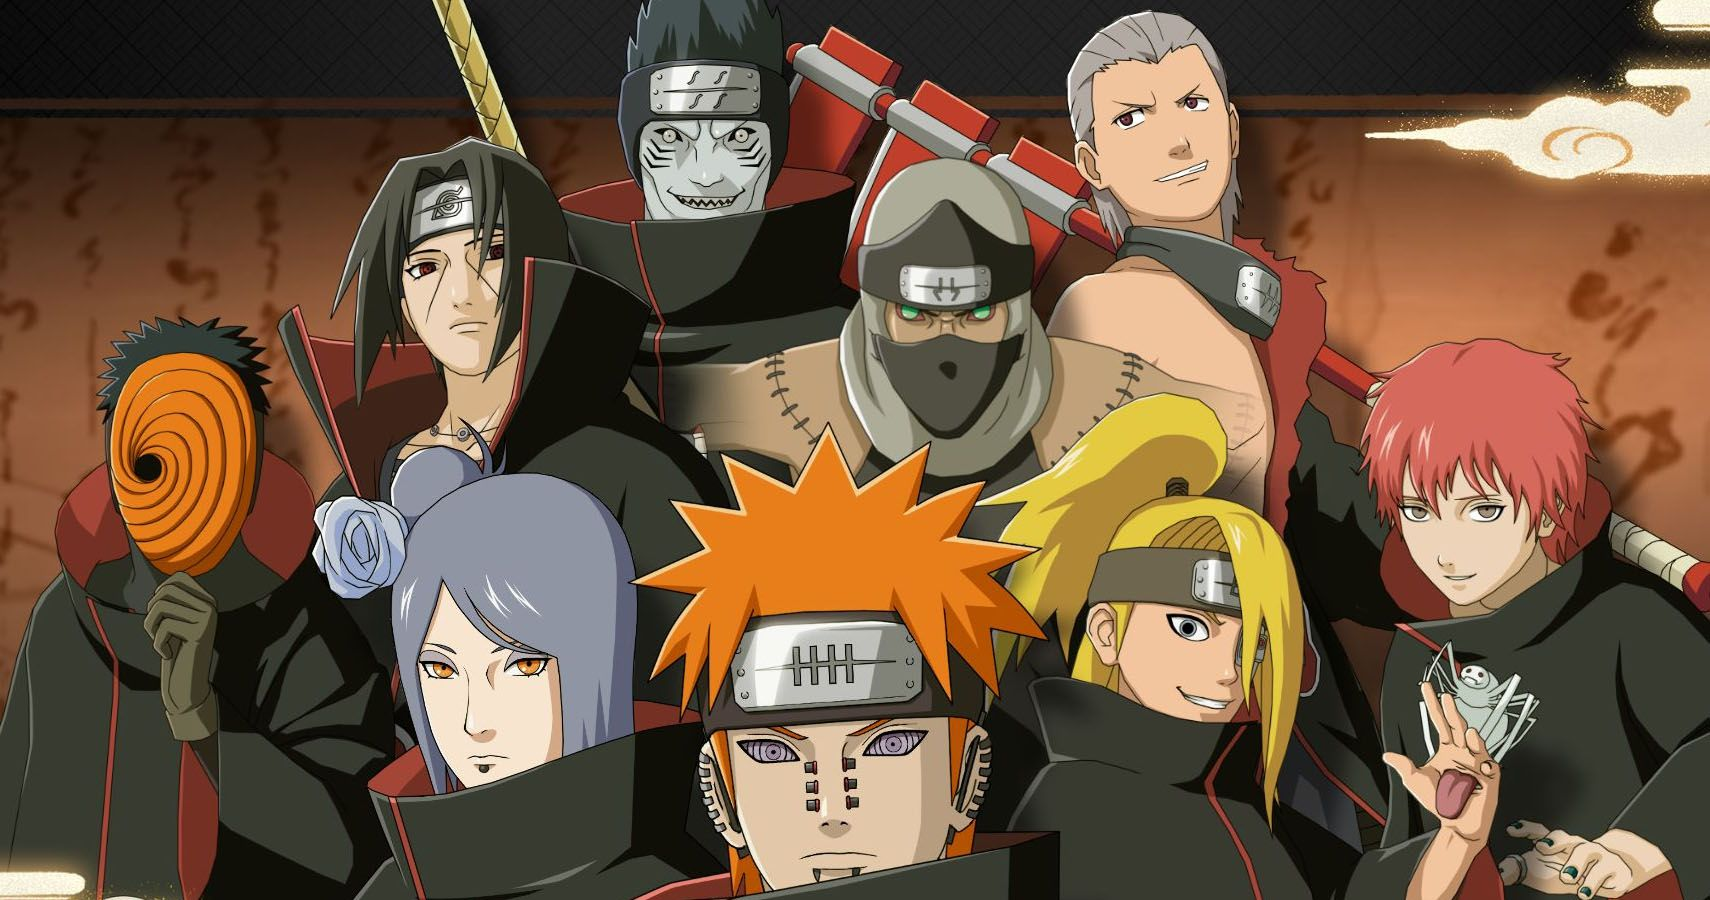 Naruto: The 20 Most Powerful Ninja Teams (And 10 Weakest